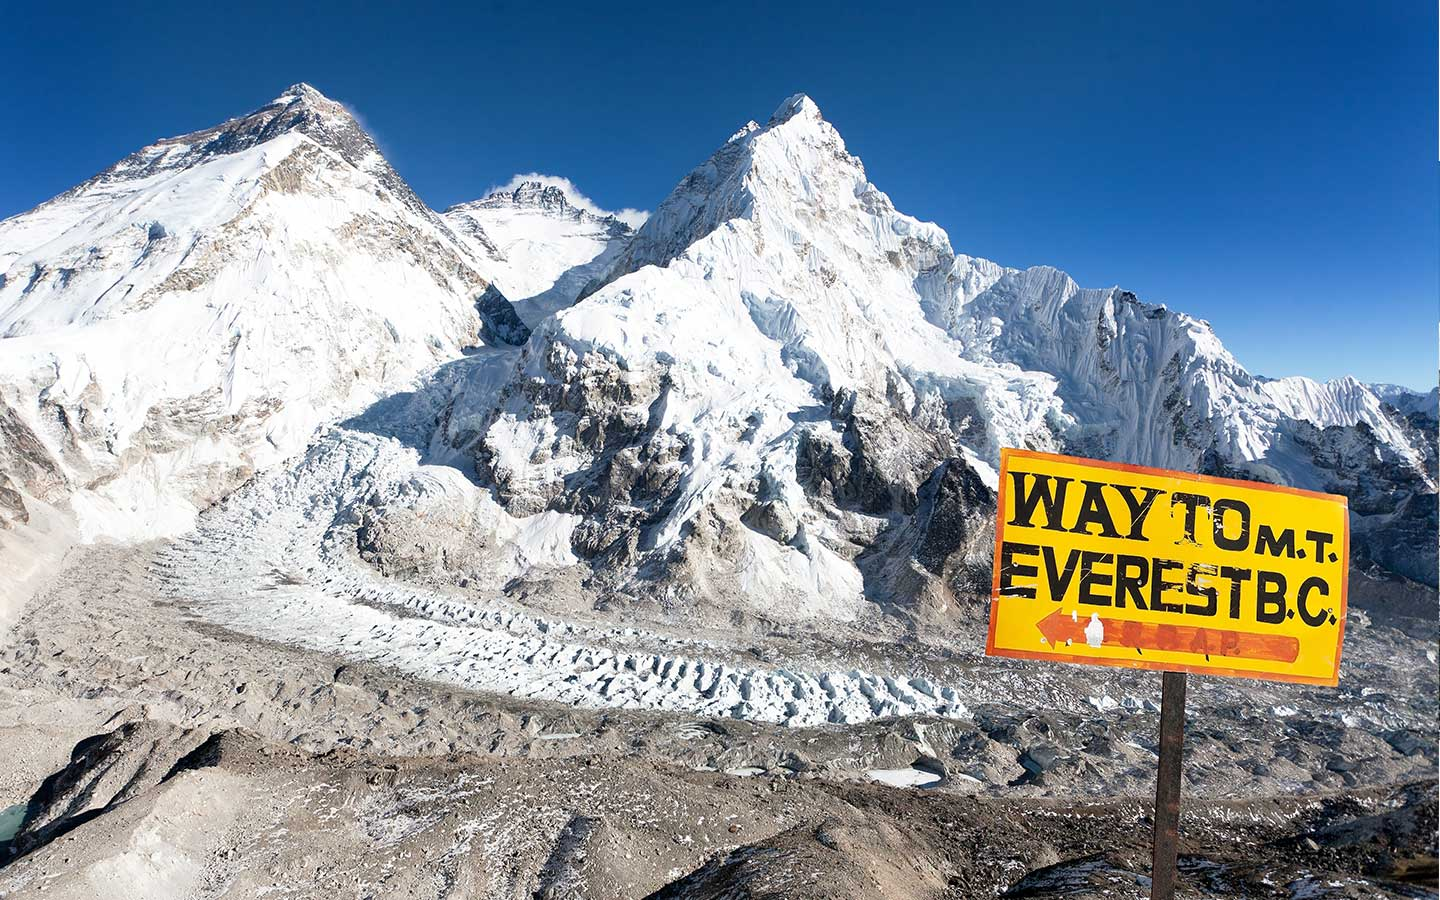 How old is mount everest?